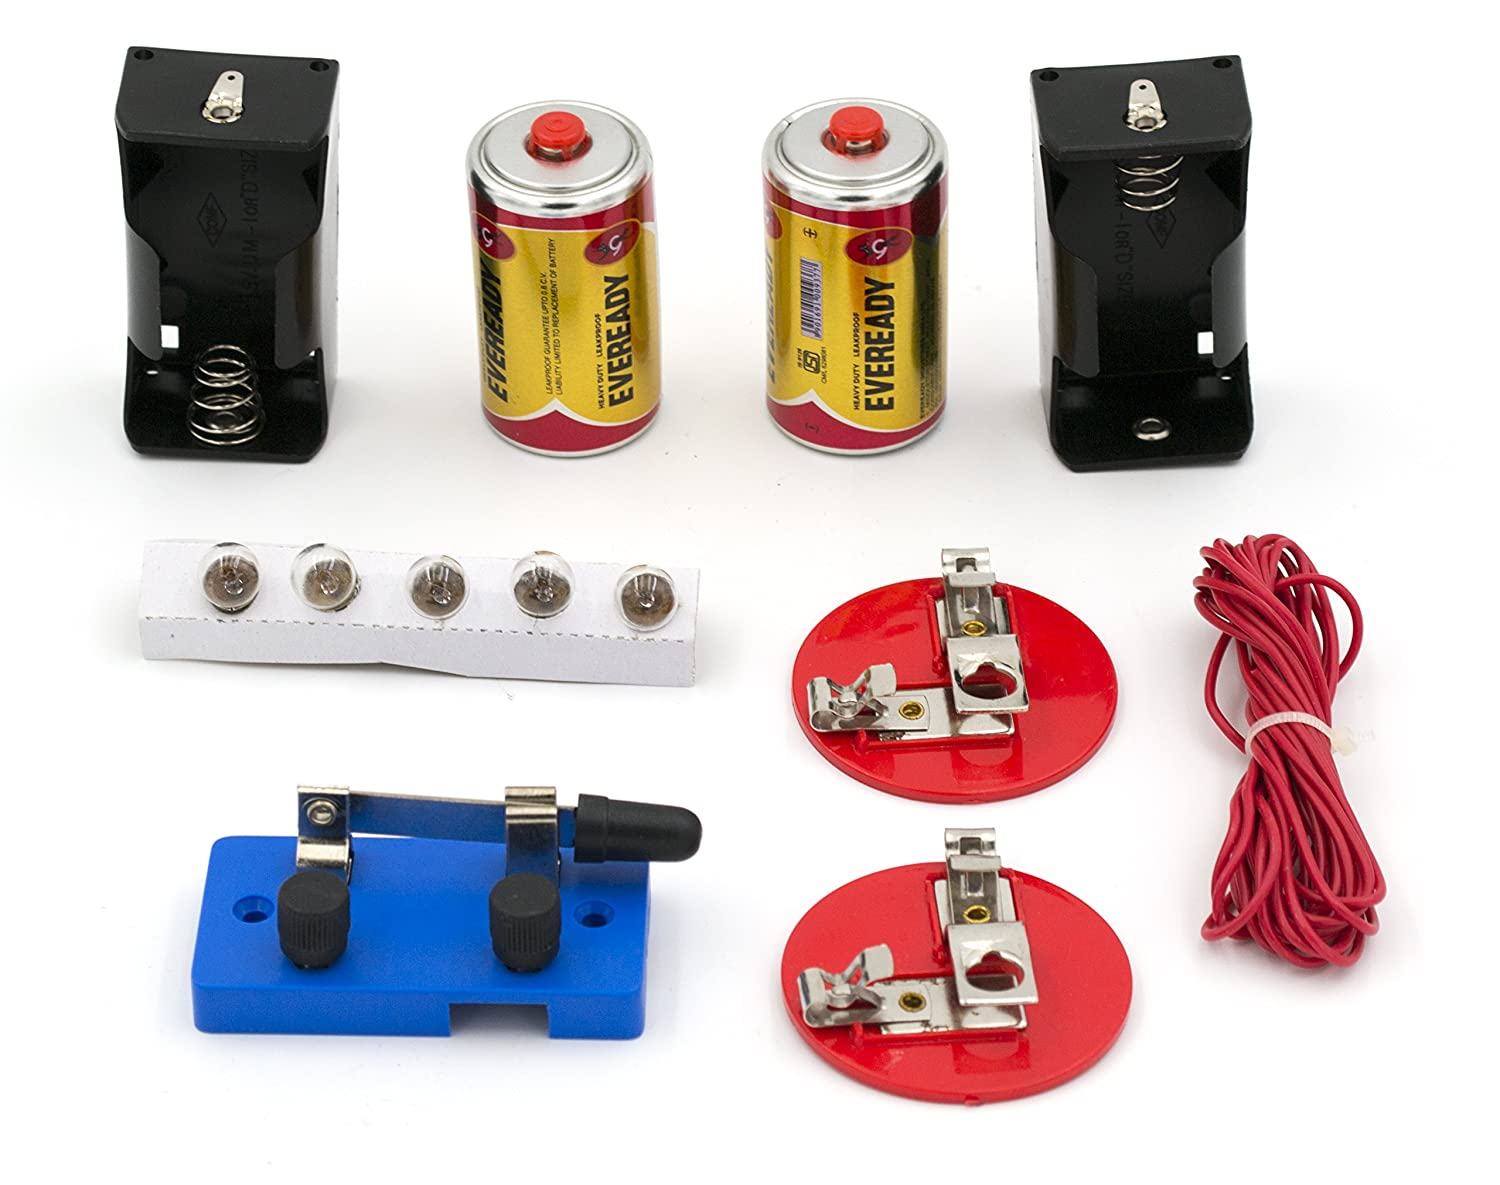 Eisco Labs Basic Beginner Circuit Kit For Teaching Series And Two Lightbulbs On A Parallel With One Light Switch Circuits 2 D Batteries W Holders 5 Bulbs